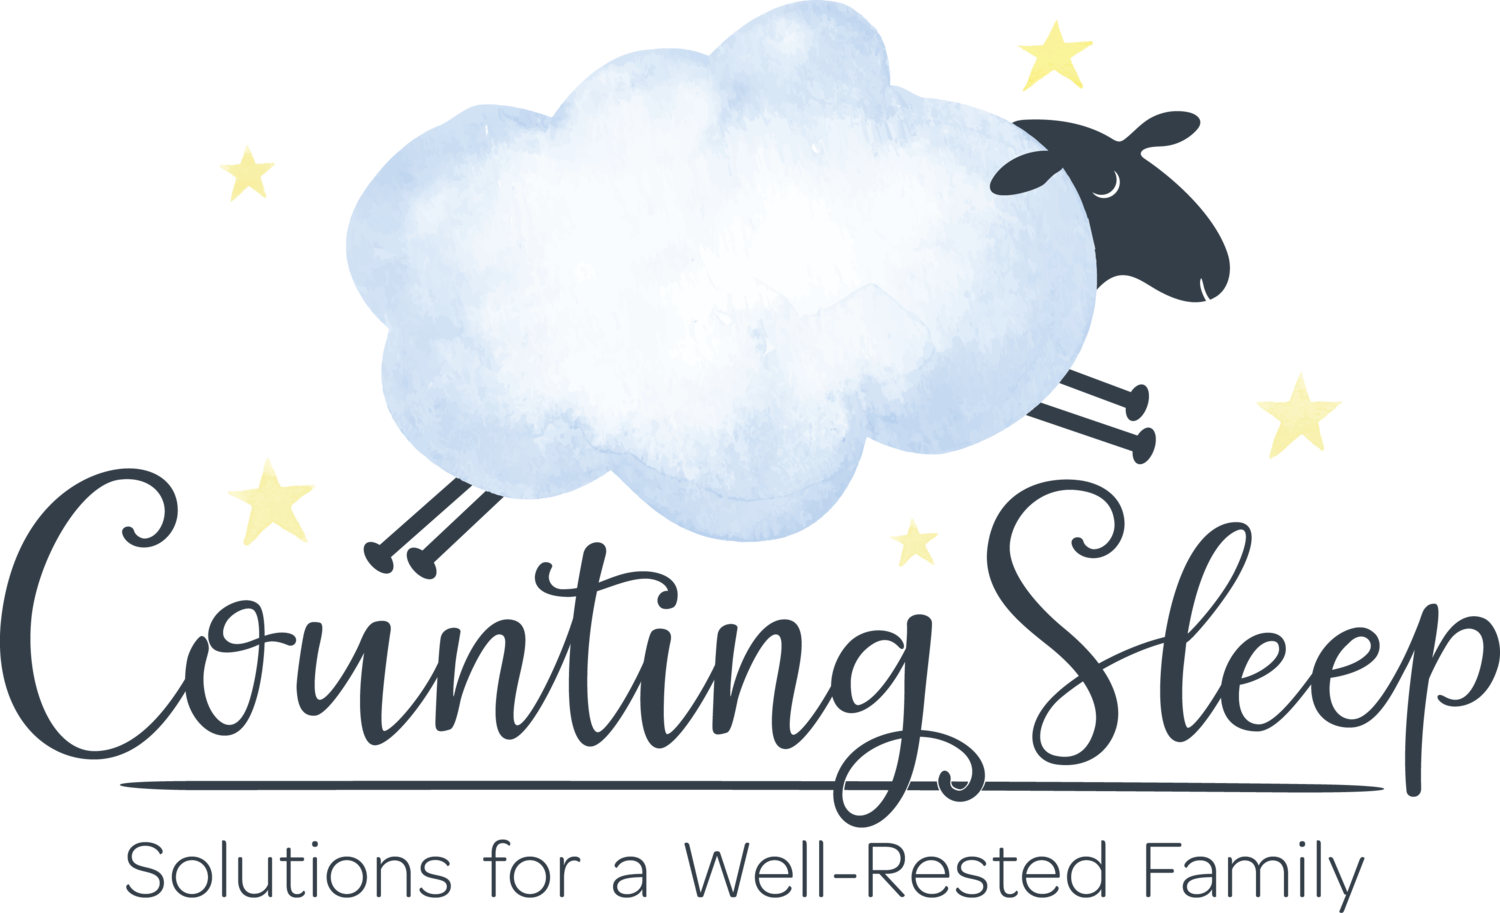 About counting sleep . Clipart sleeping good evening